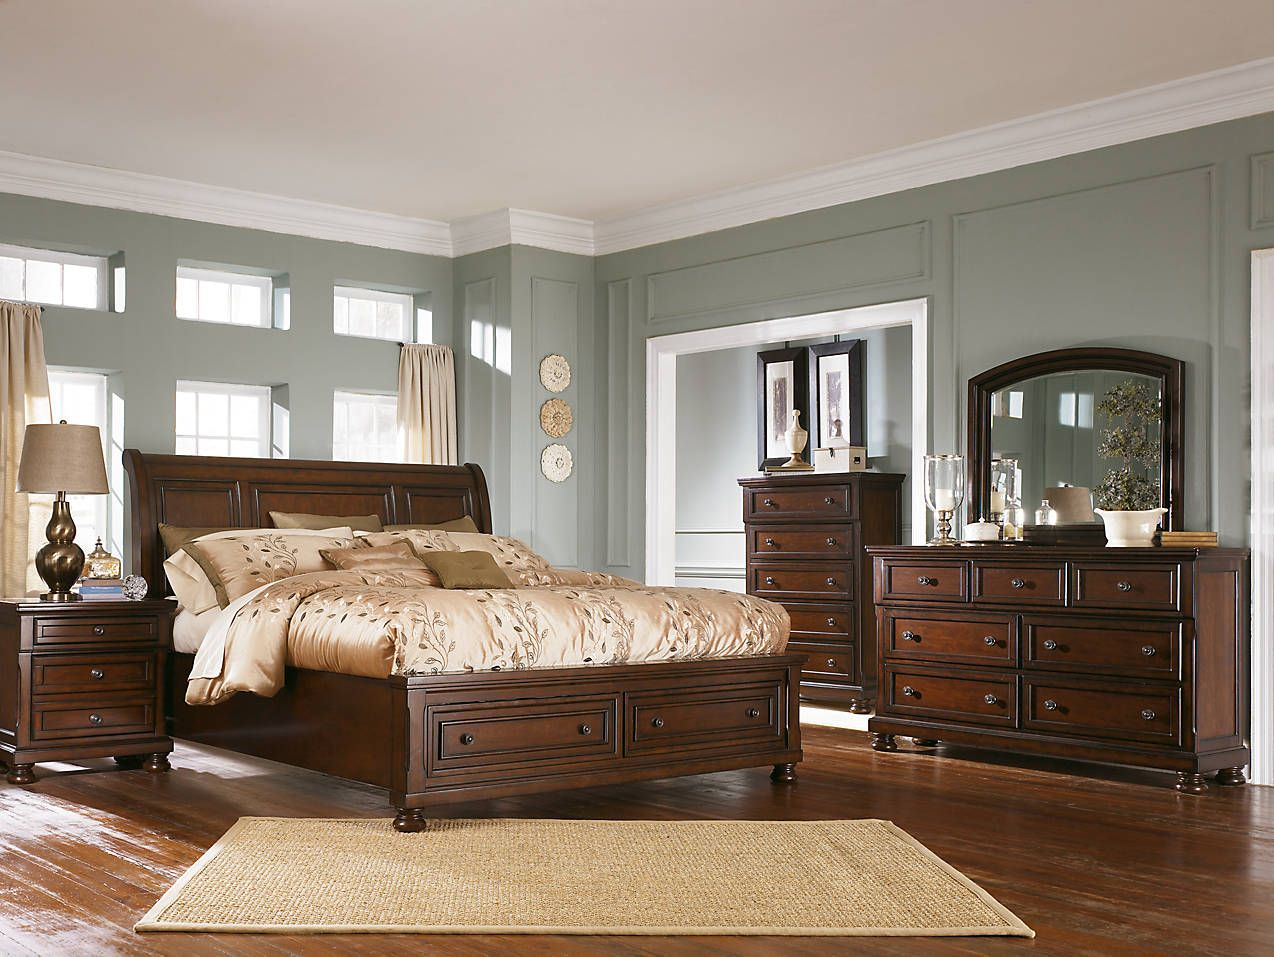 Porter traditional dark wood sleigh bed frame and matching furniture ...